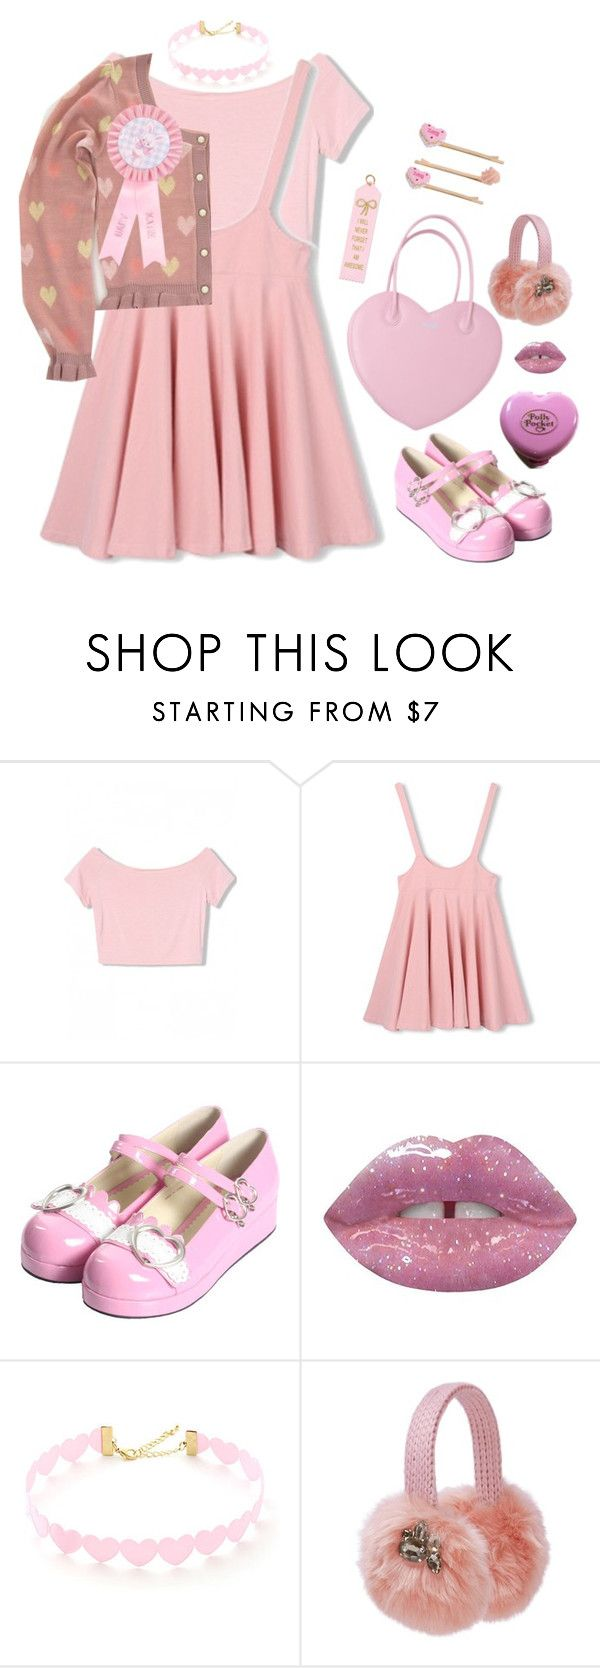 """""""hearts"""" by moon-grrrl ❤ liked on Polyvore featuring Bodyline, Lime Crime, Lipsy, Miss Selfridge, women's clothing, women, female, woman, misses and juniors"""